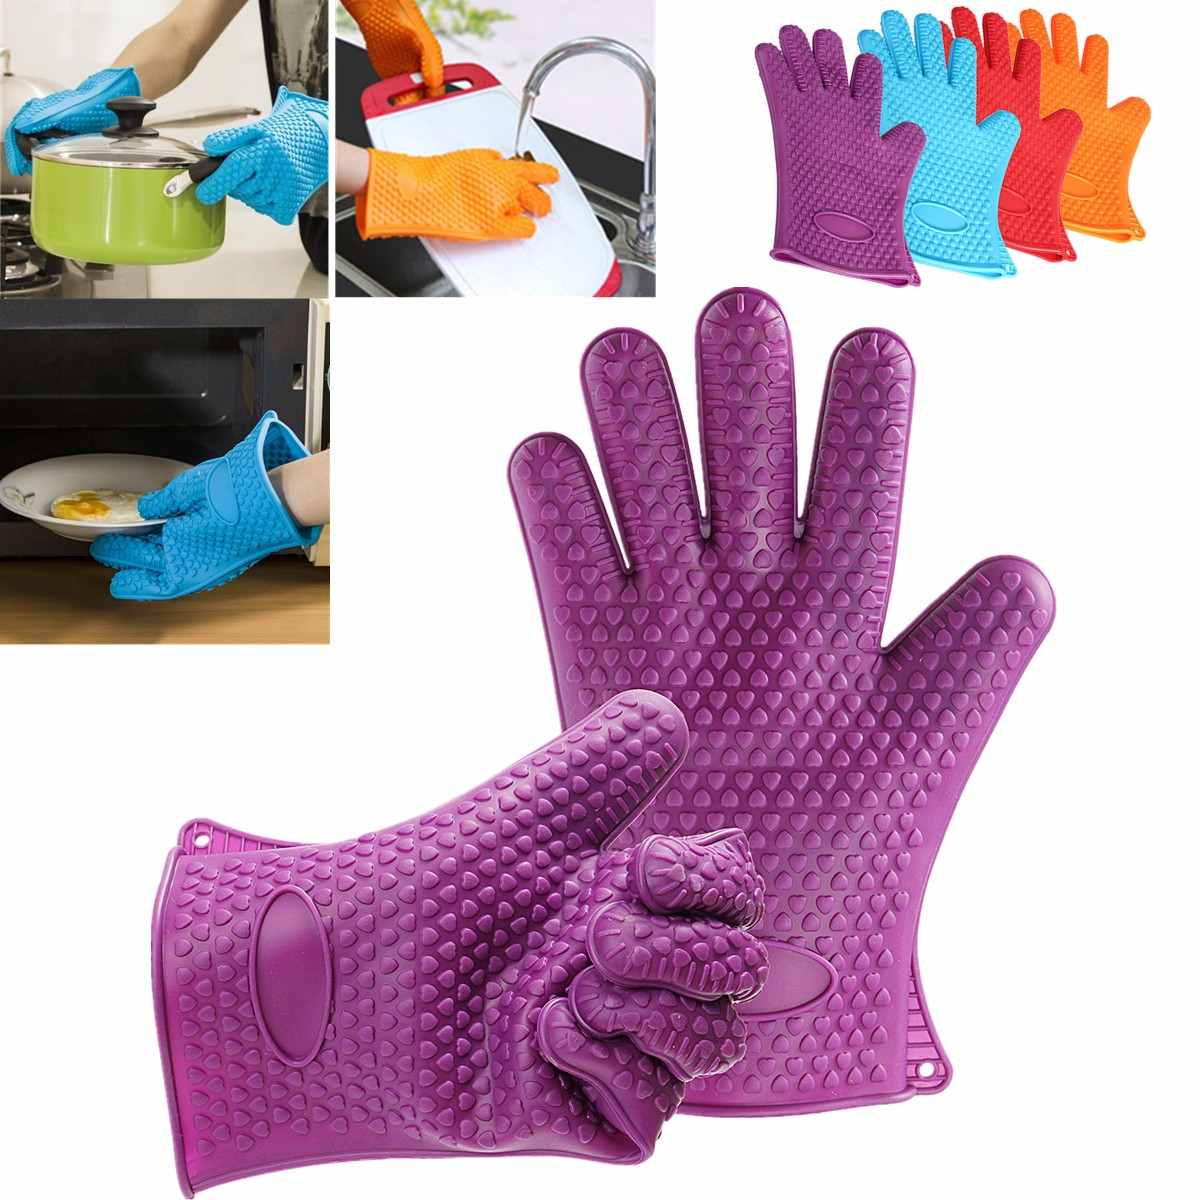 1 Pair food grade Heat Resistant Silicone Kitchen barbecue oven glove Cooking BBQ Grill Glove Oven Mitt Baking Protective gloves купить в Москве 2019